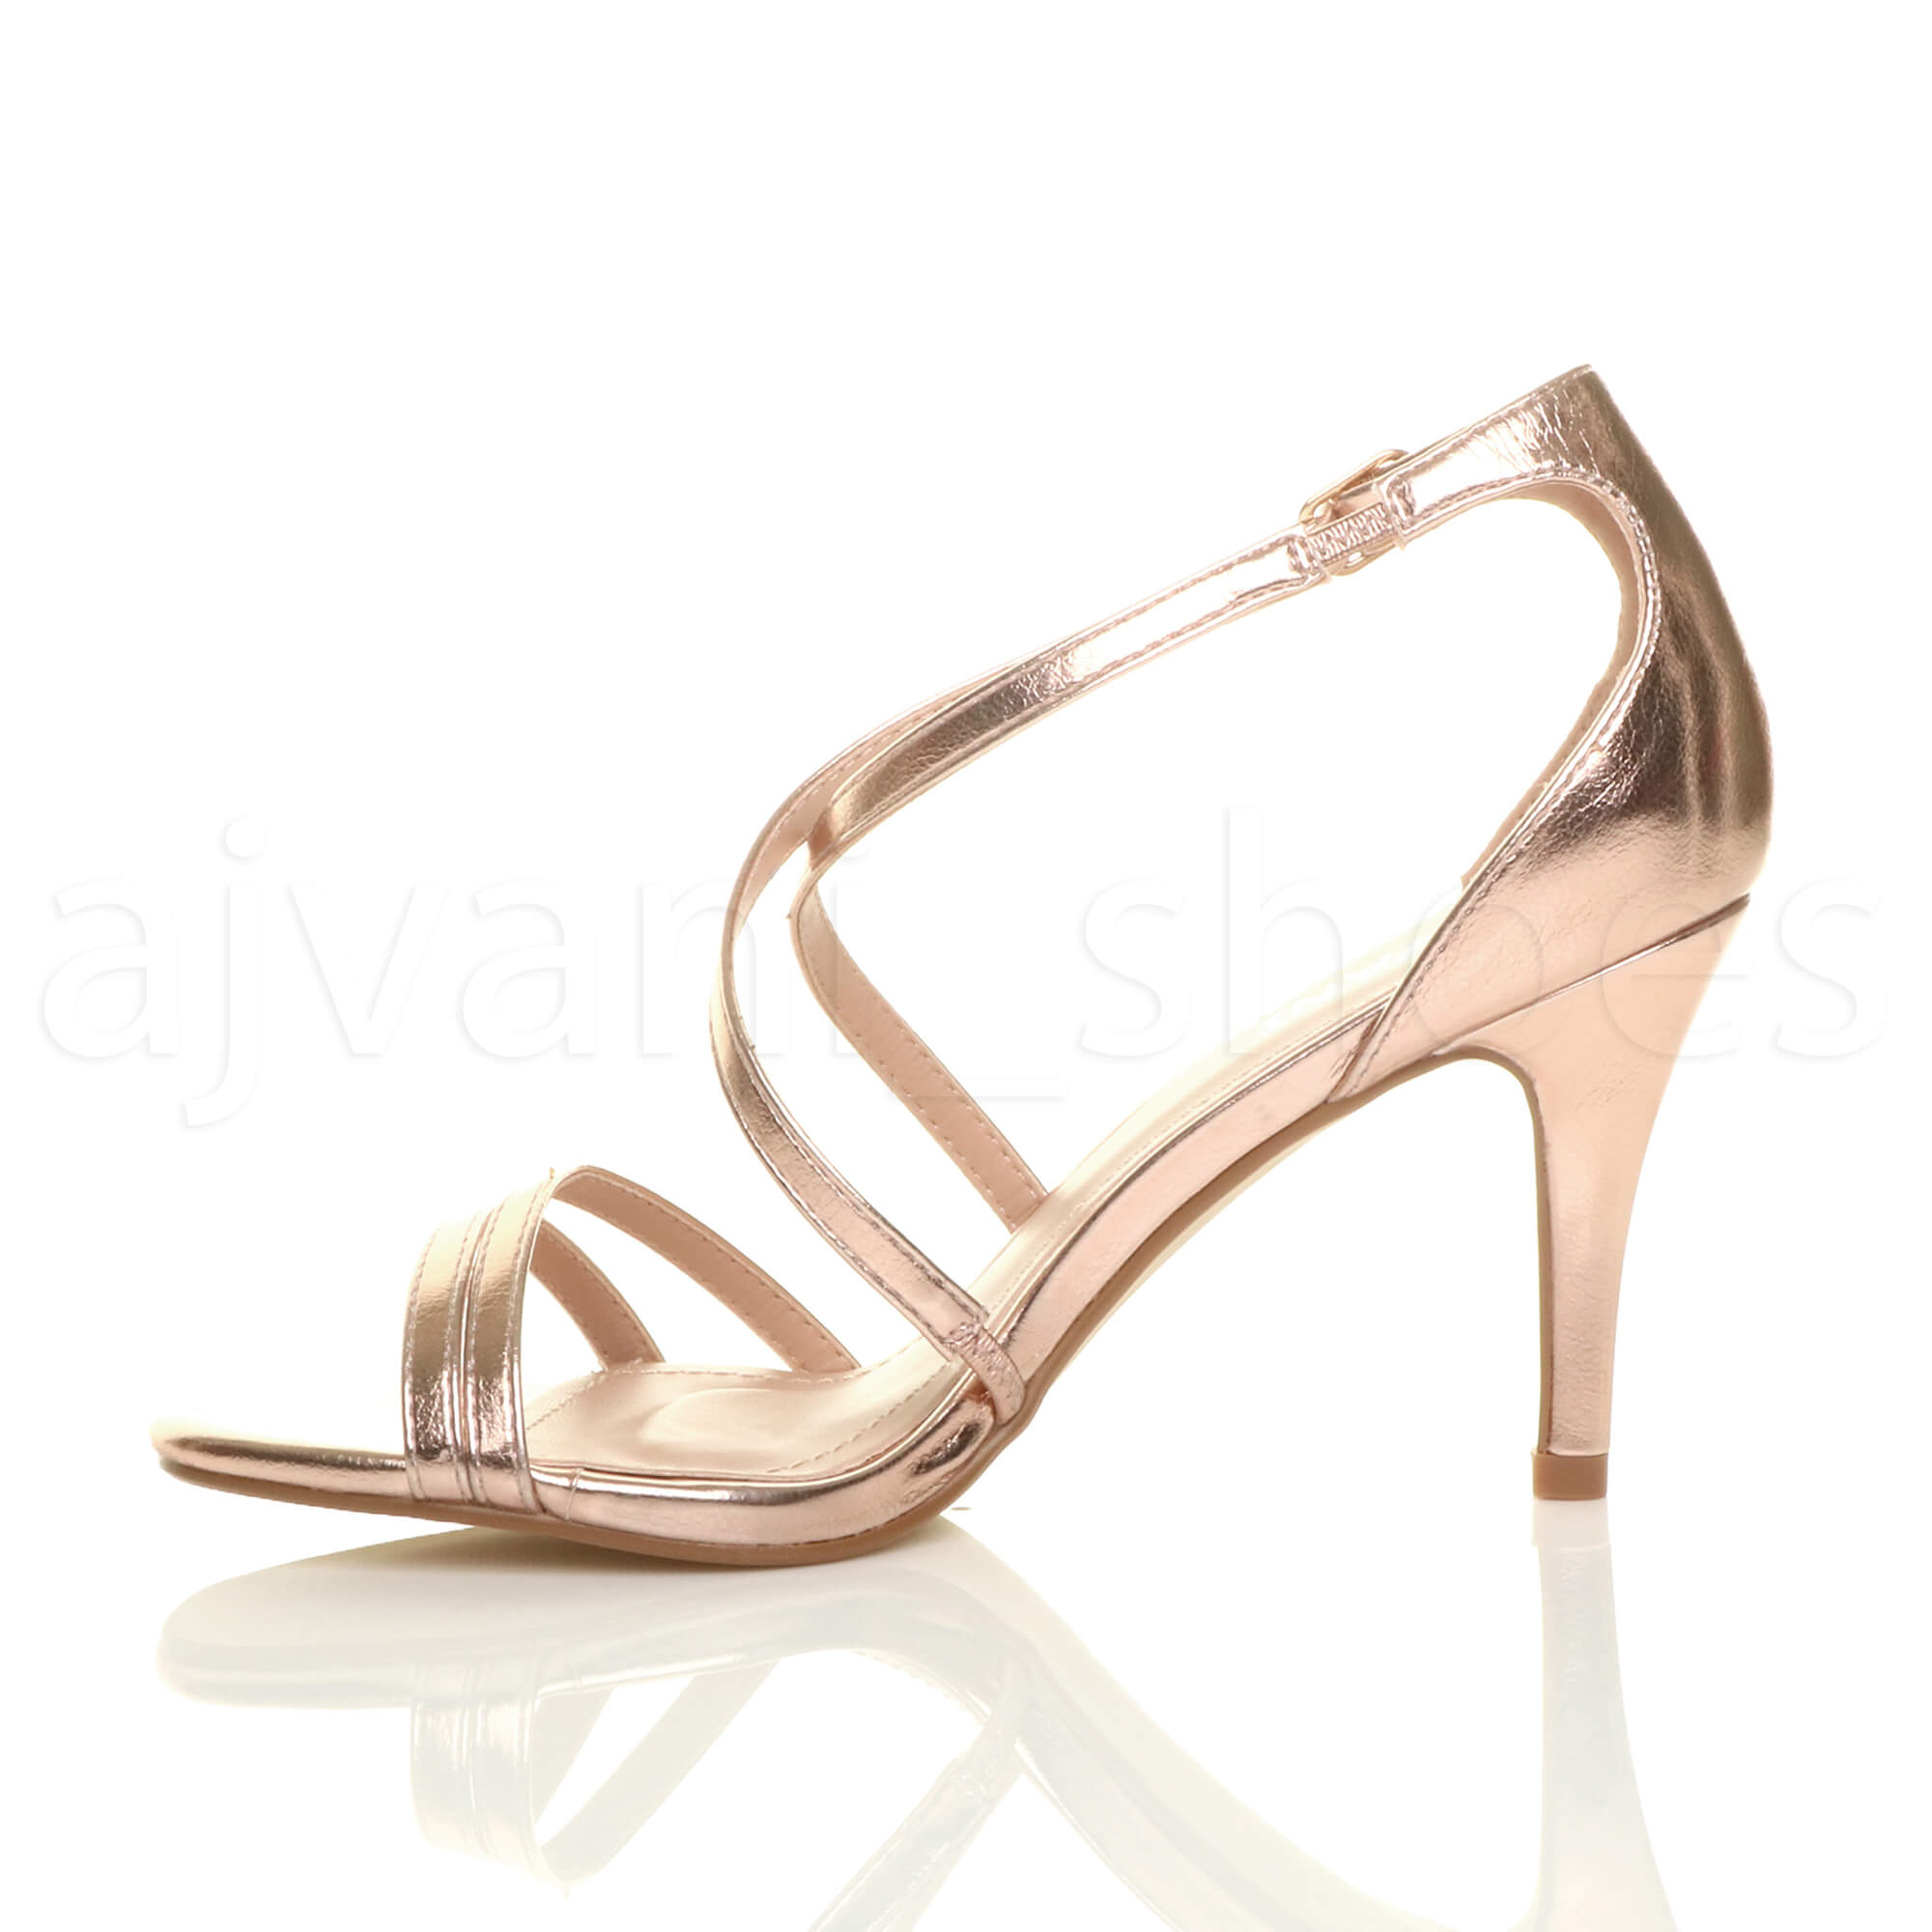 WOMENS-LADIES-MID-HIGH-HEEL-STRAPPY-CROSSOVER-WEDDING-PROM-SANDALS-SHOES-SIZE thumbnail 137